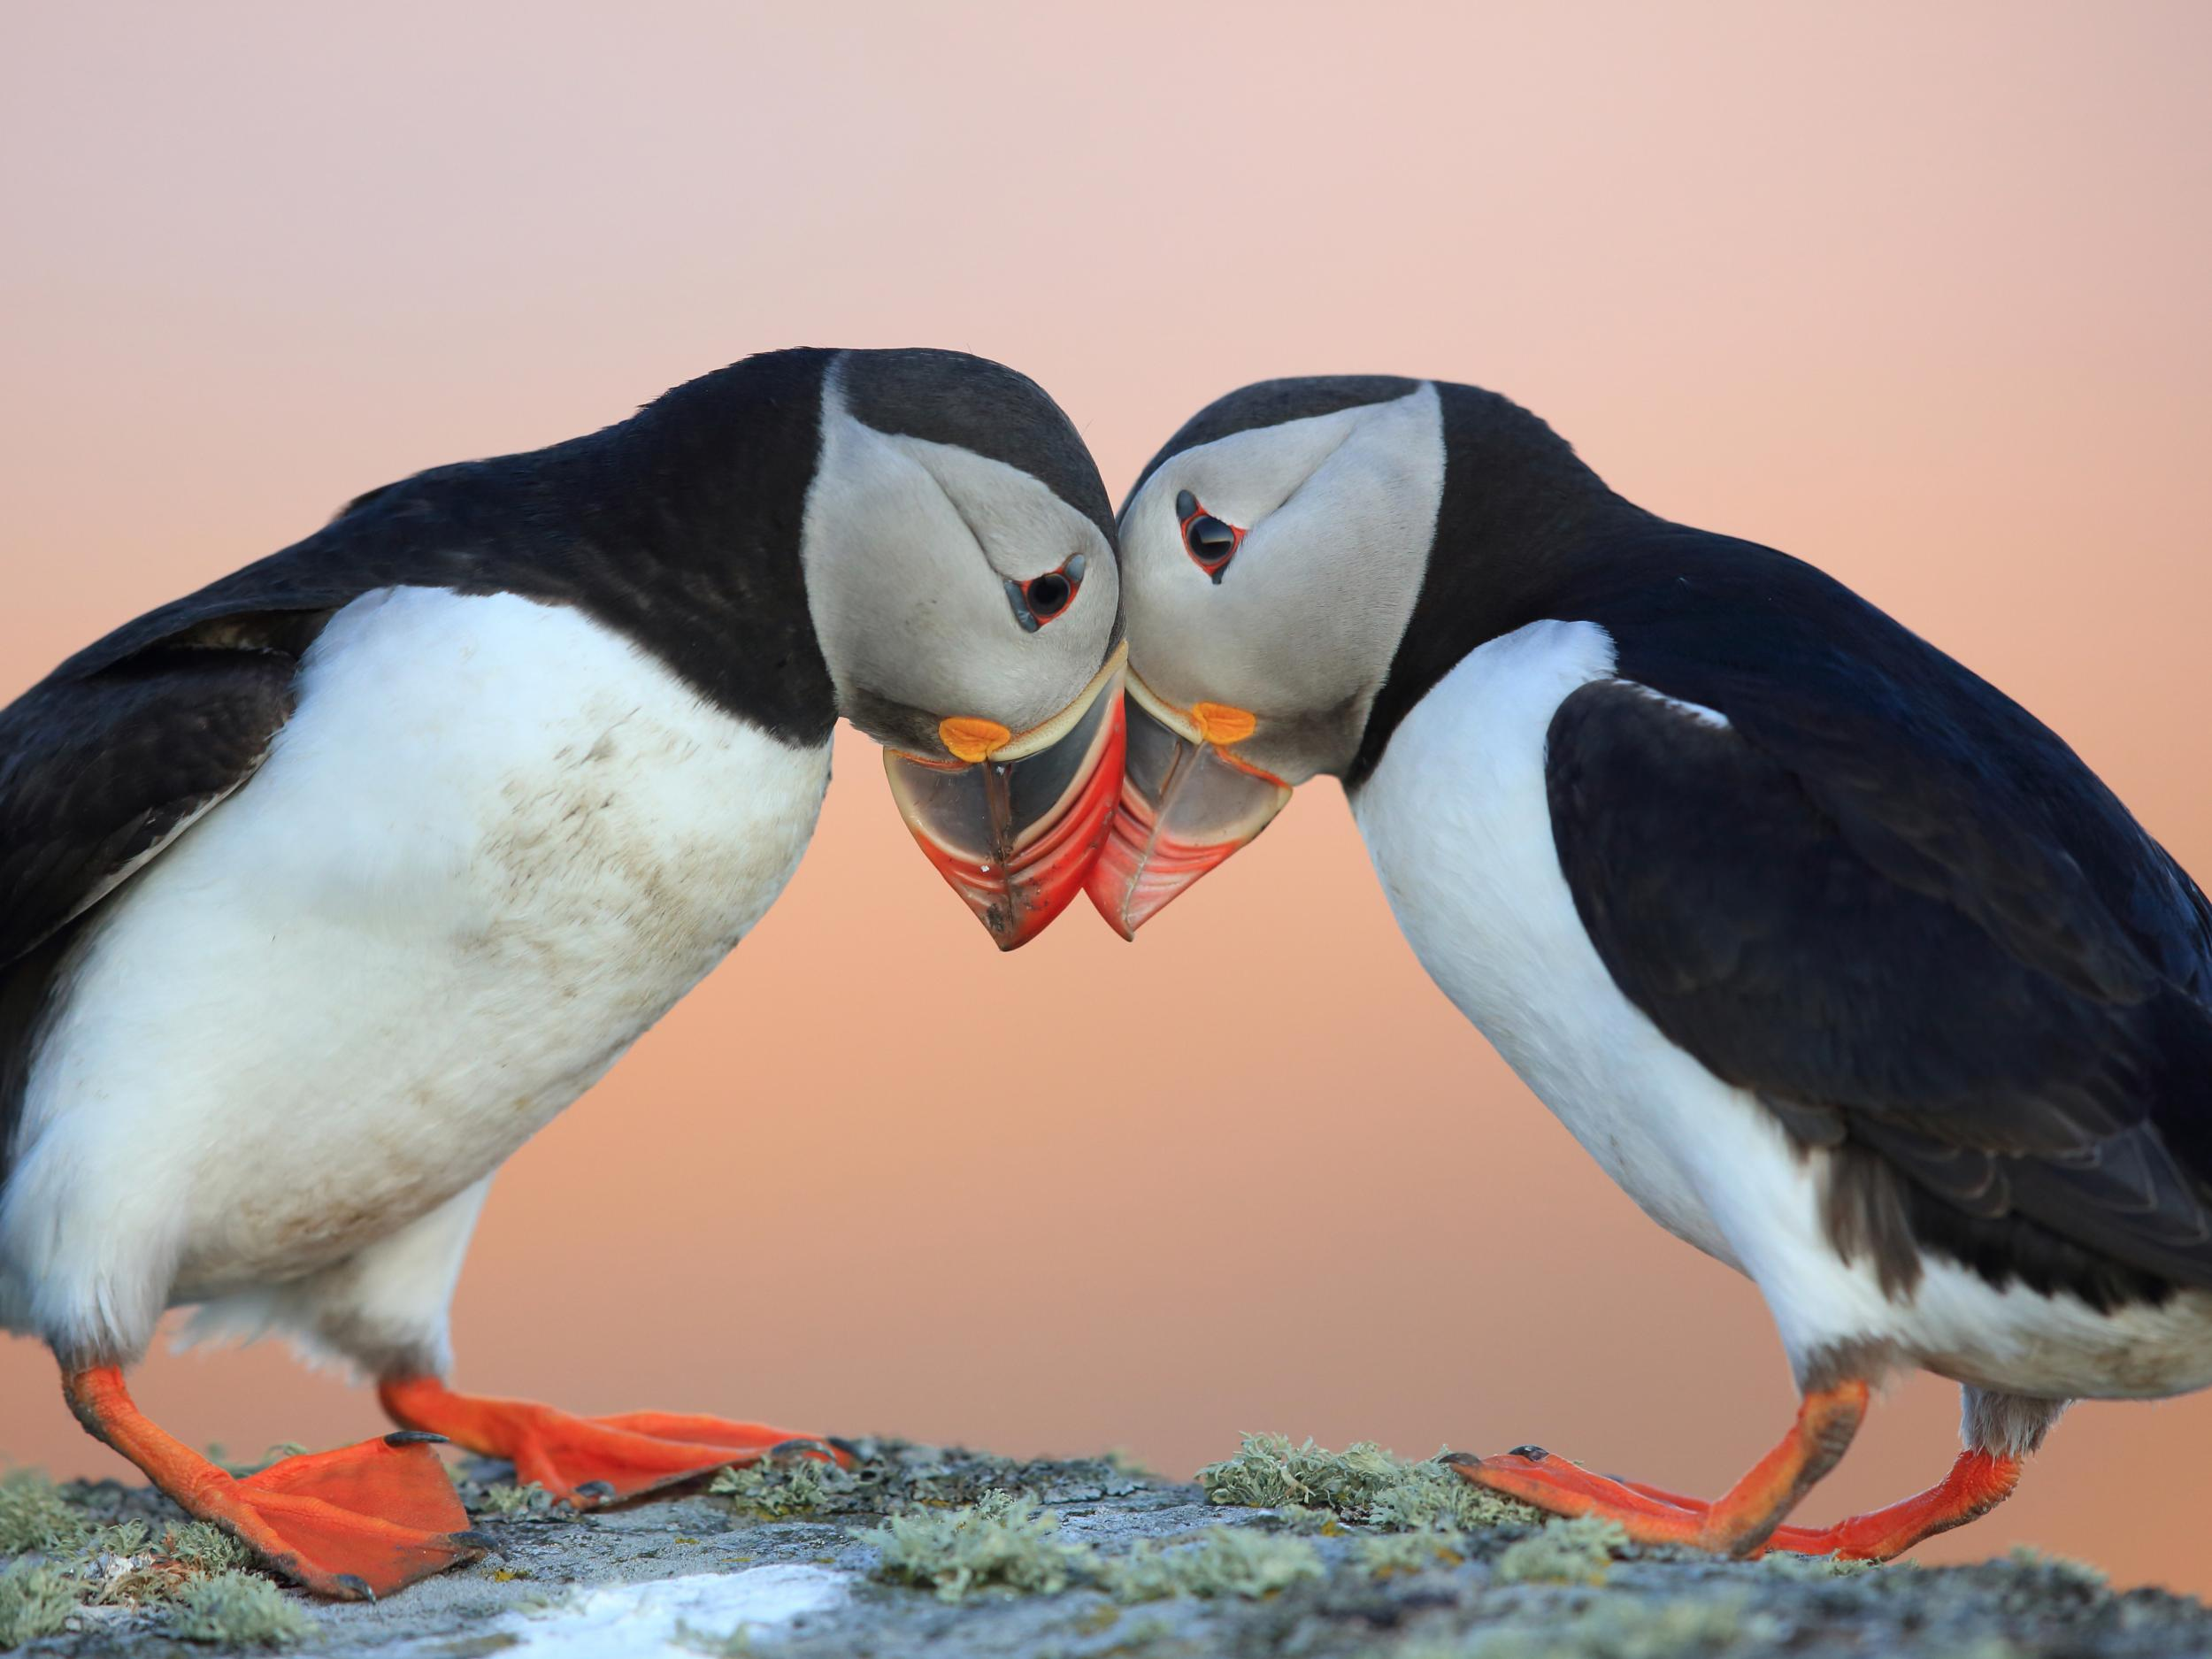 Puffins are declining and climate change could become the largest cause